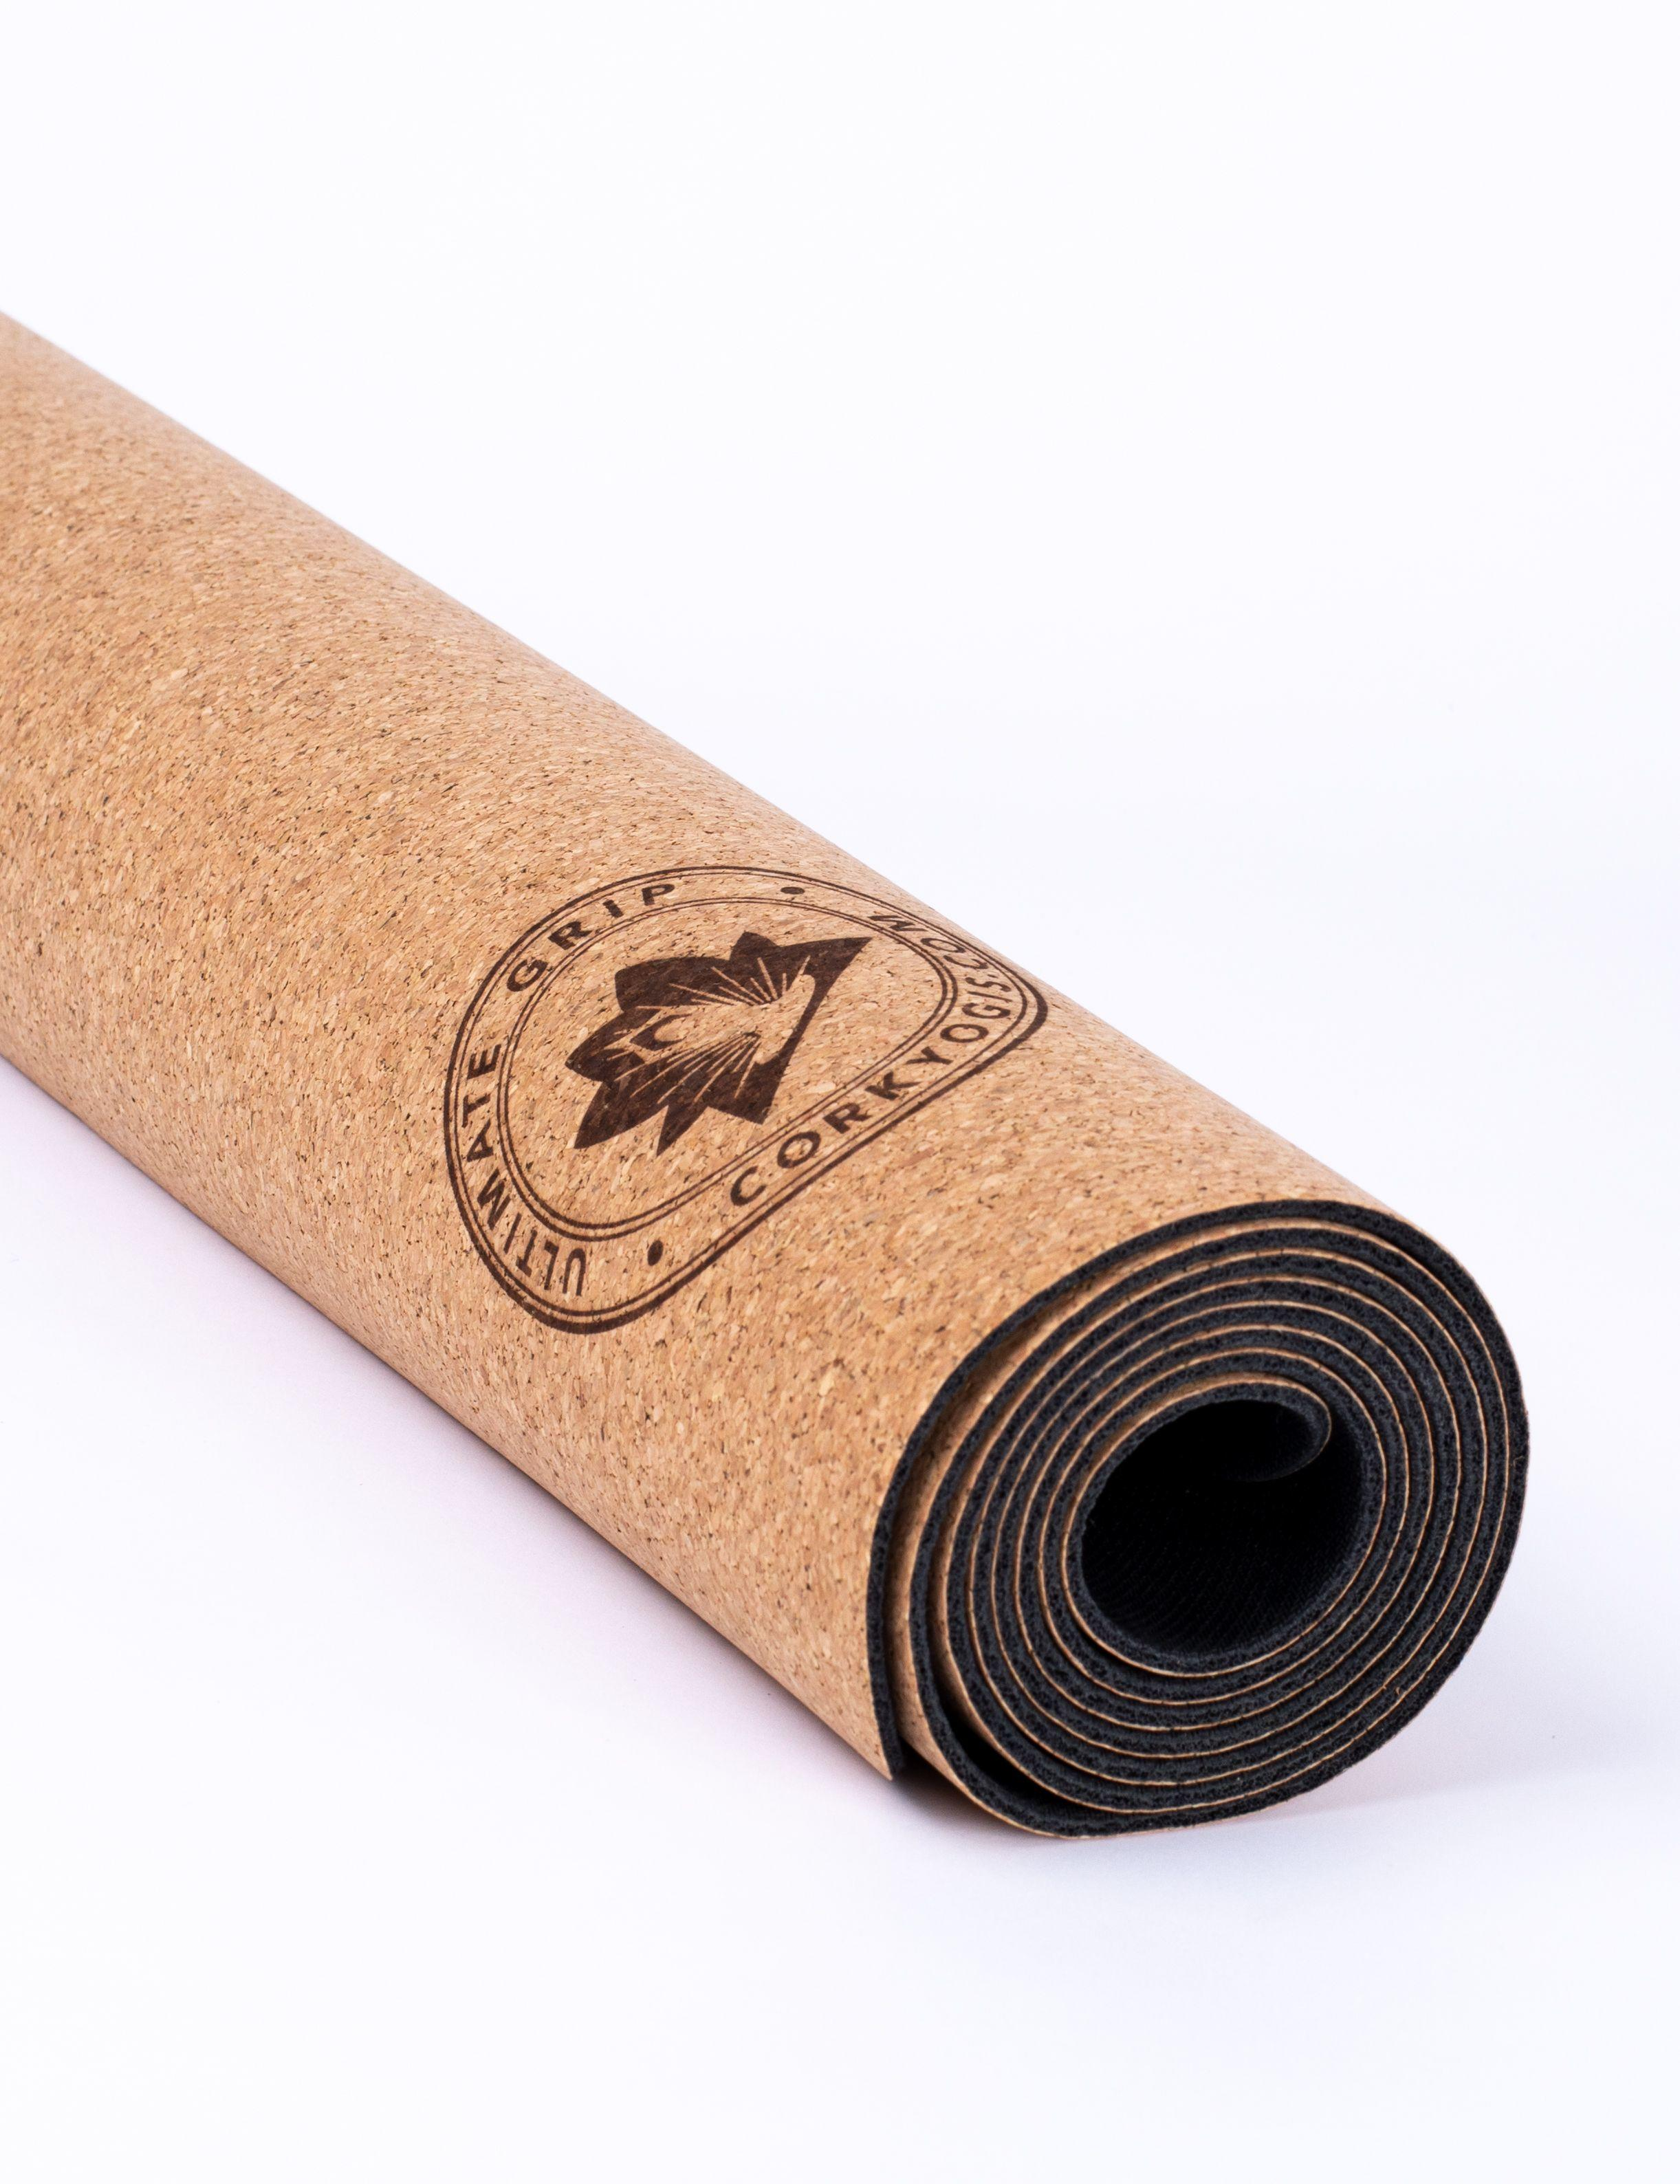 Best eco-friendly yoga mat